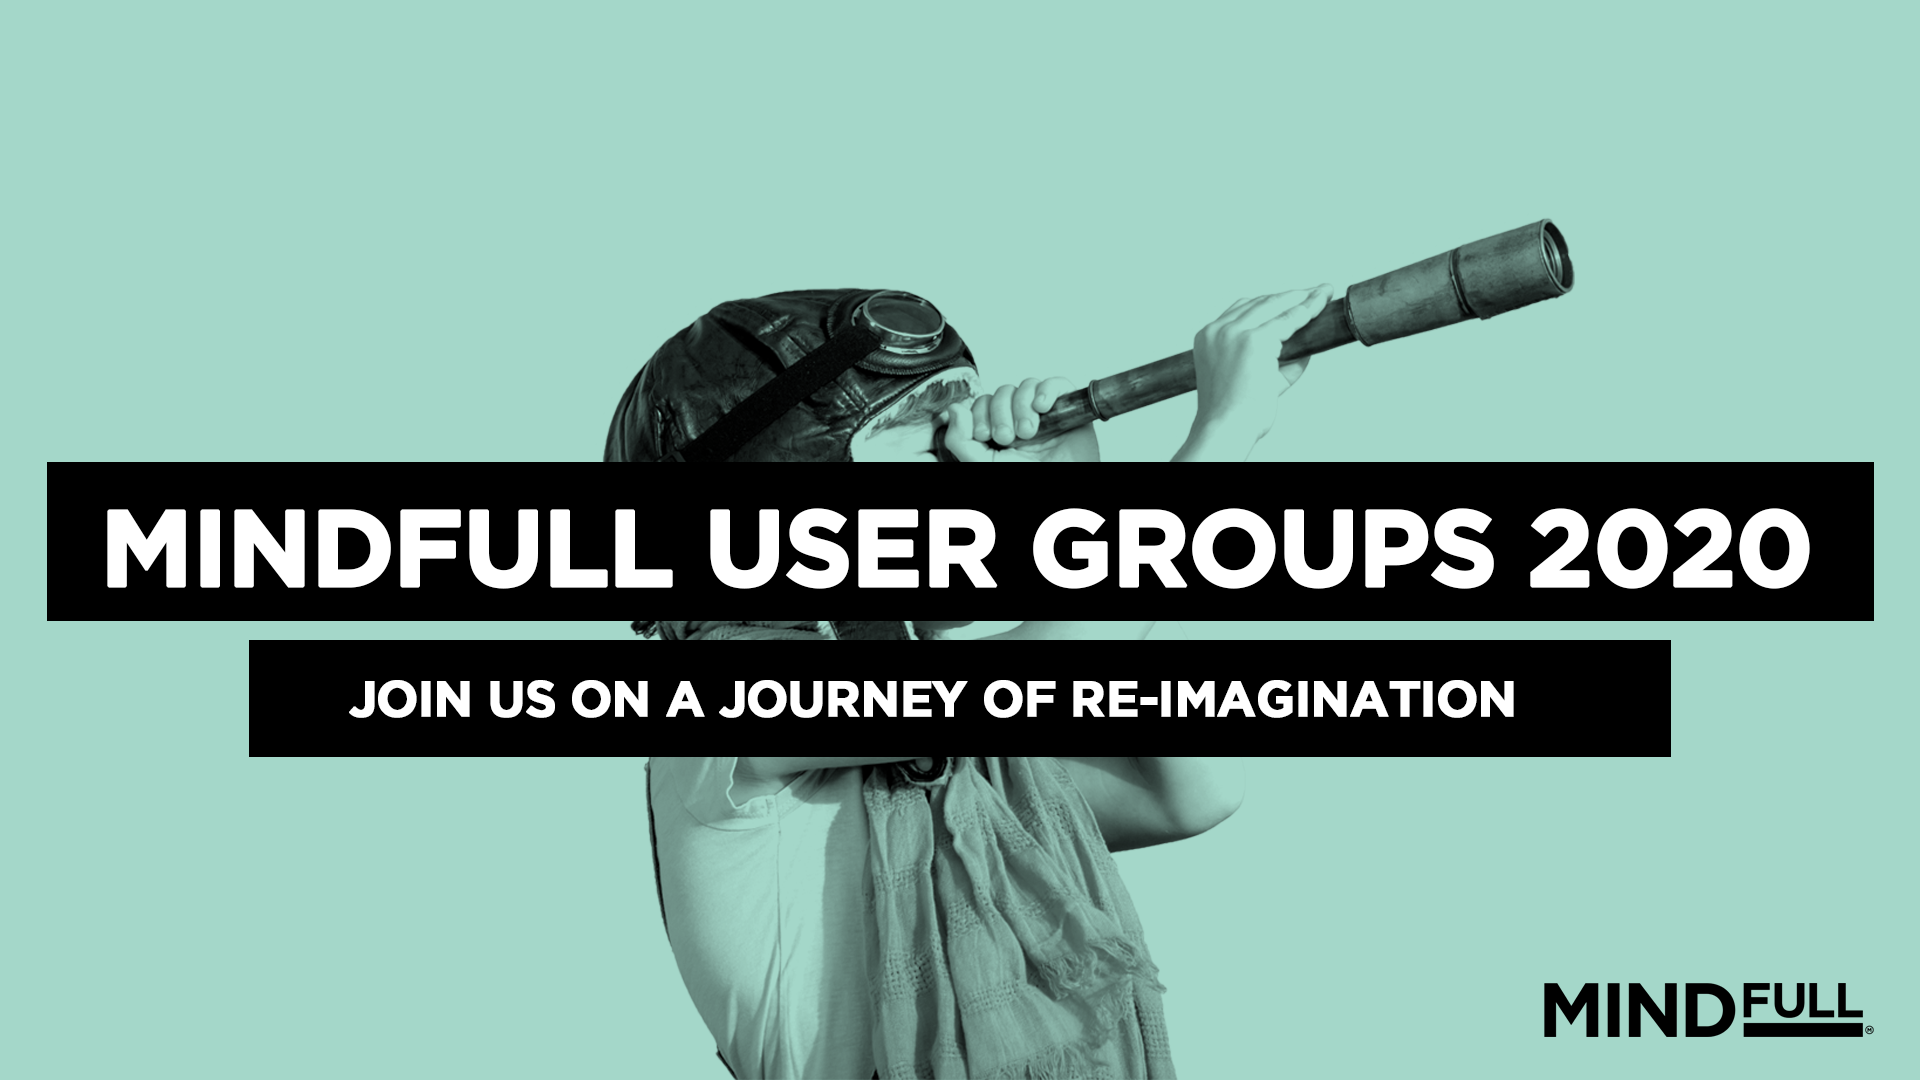 GRAPHICS- user groups